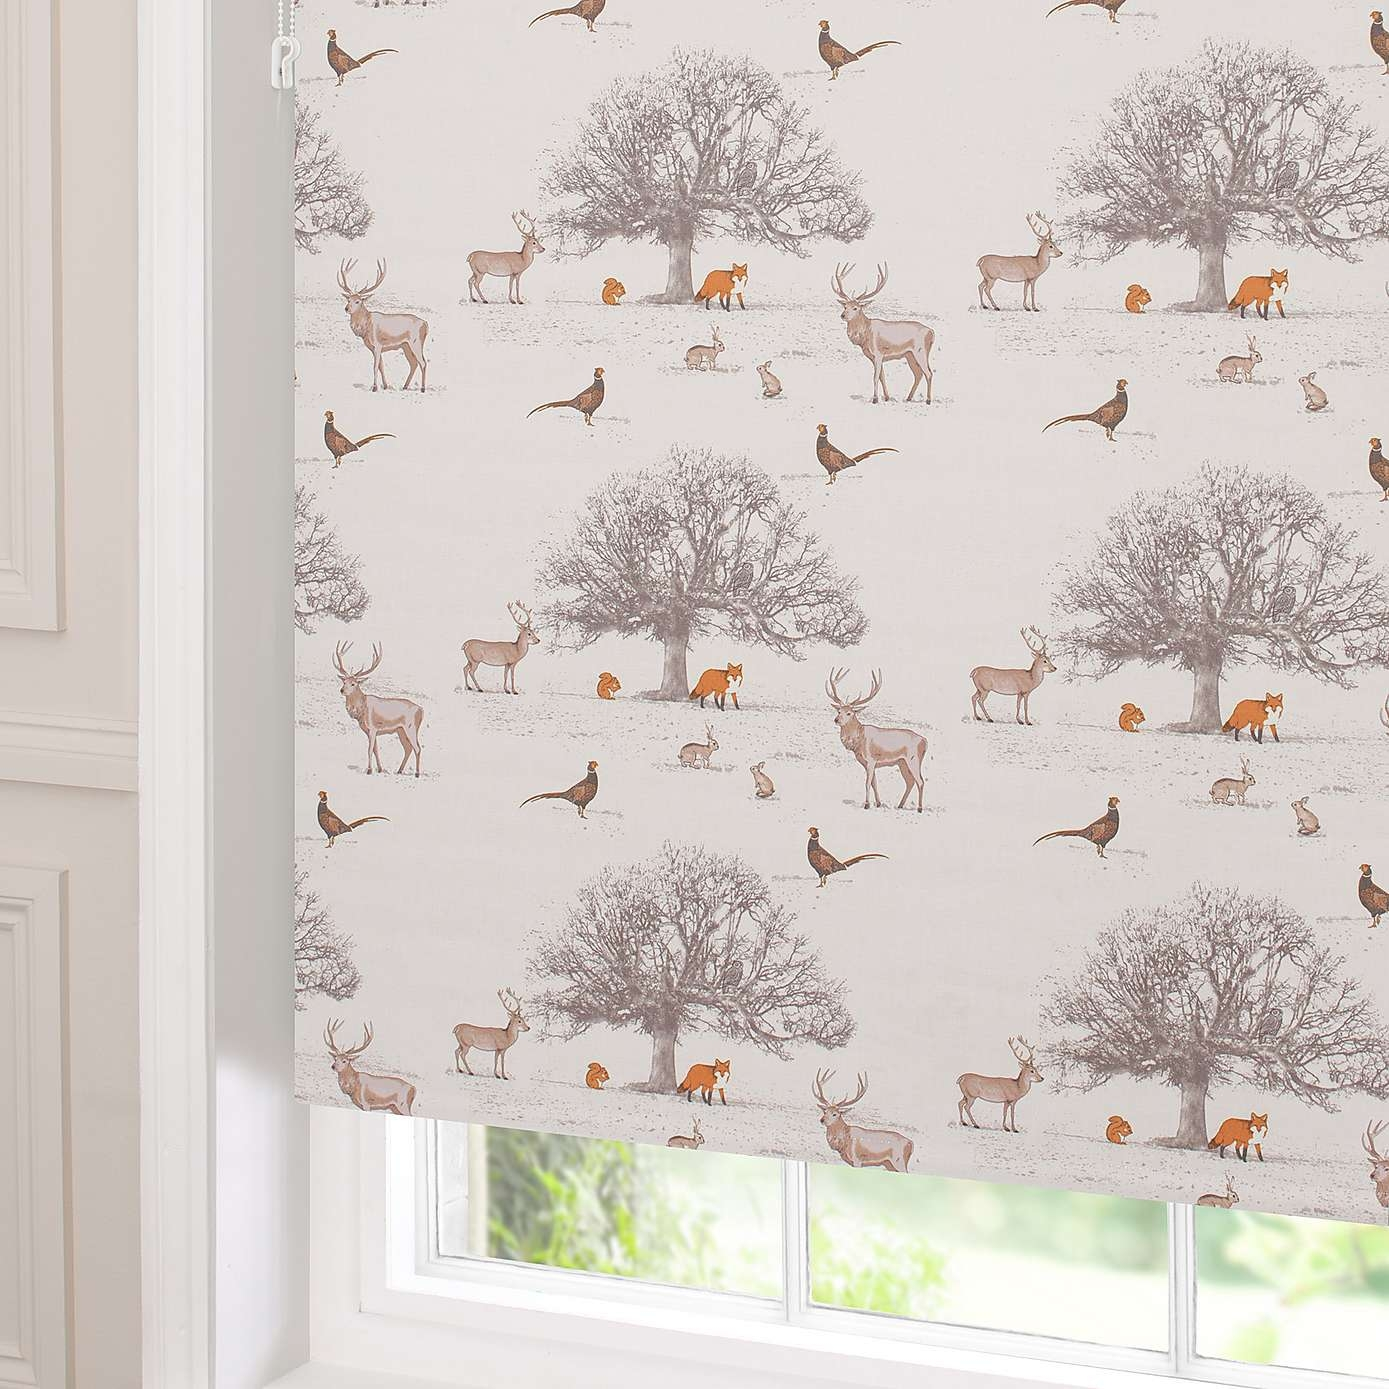 Tatton Blackout Roller Blind Dunelm Curtains Blinds Within Patterned Roller Blind (Image 14 of 15)